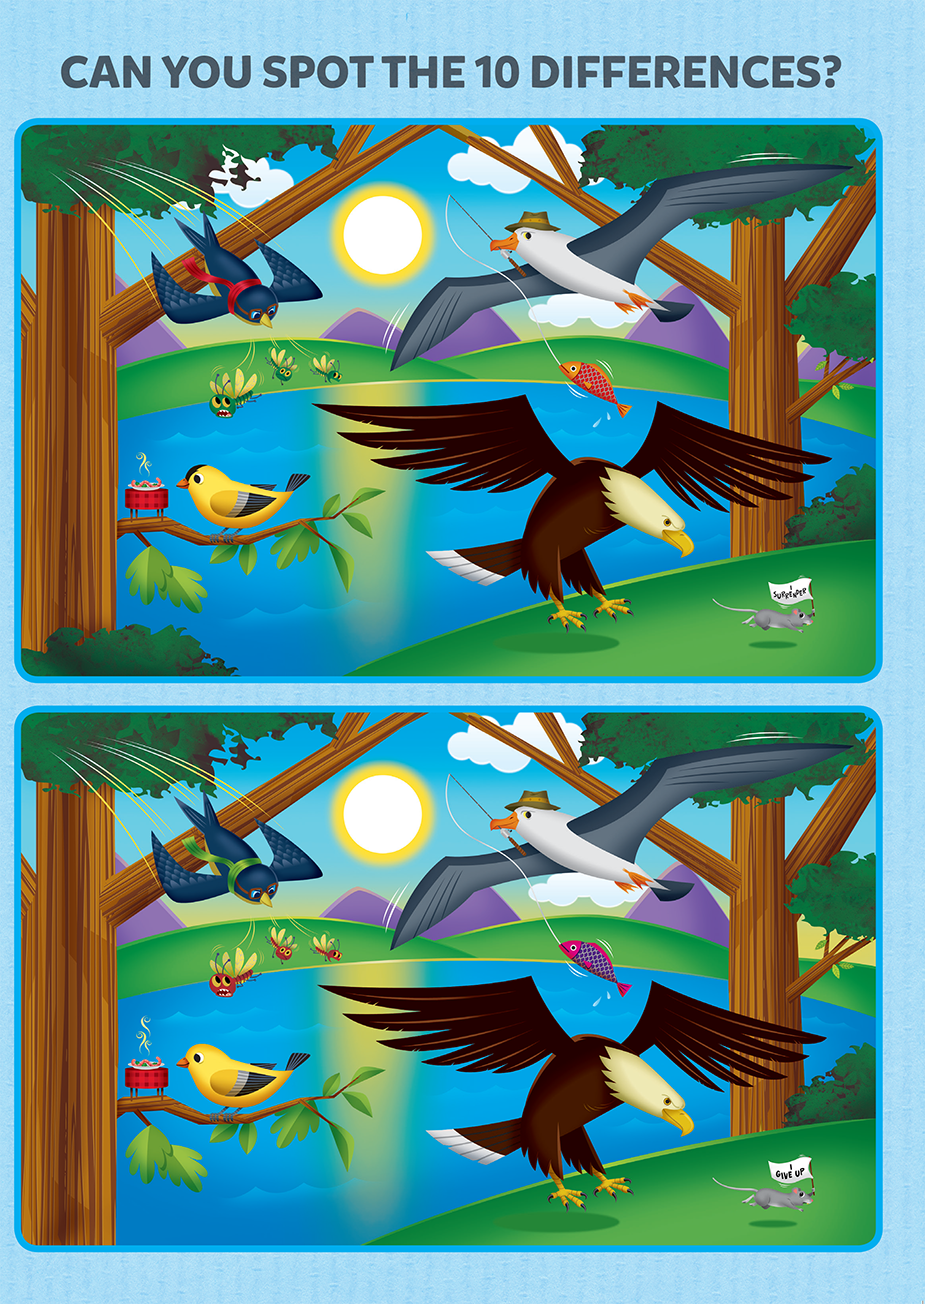 Can you find ten differences?